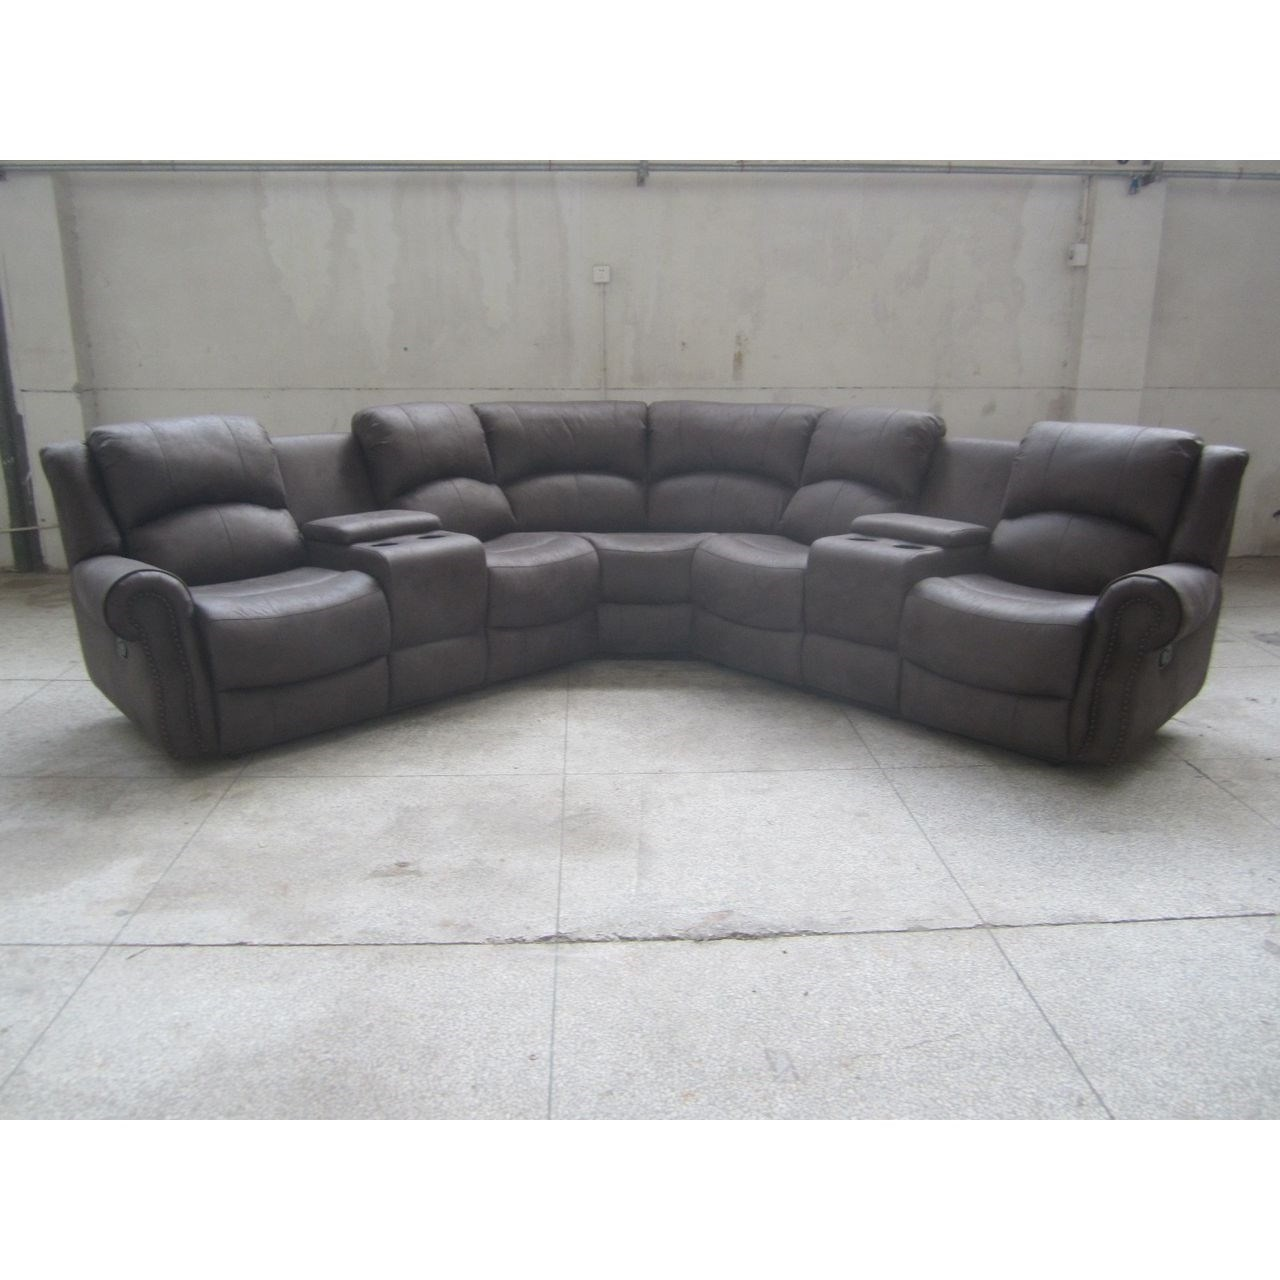 Lifestyle 5530S Casual Sectional Sofa - Item Number: U5530S-42L+W0X+42R